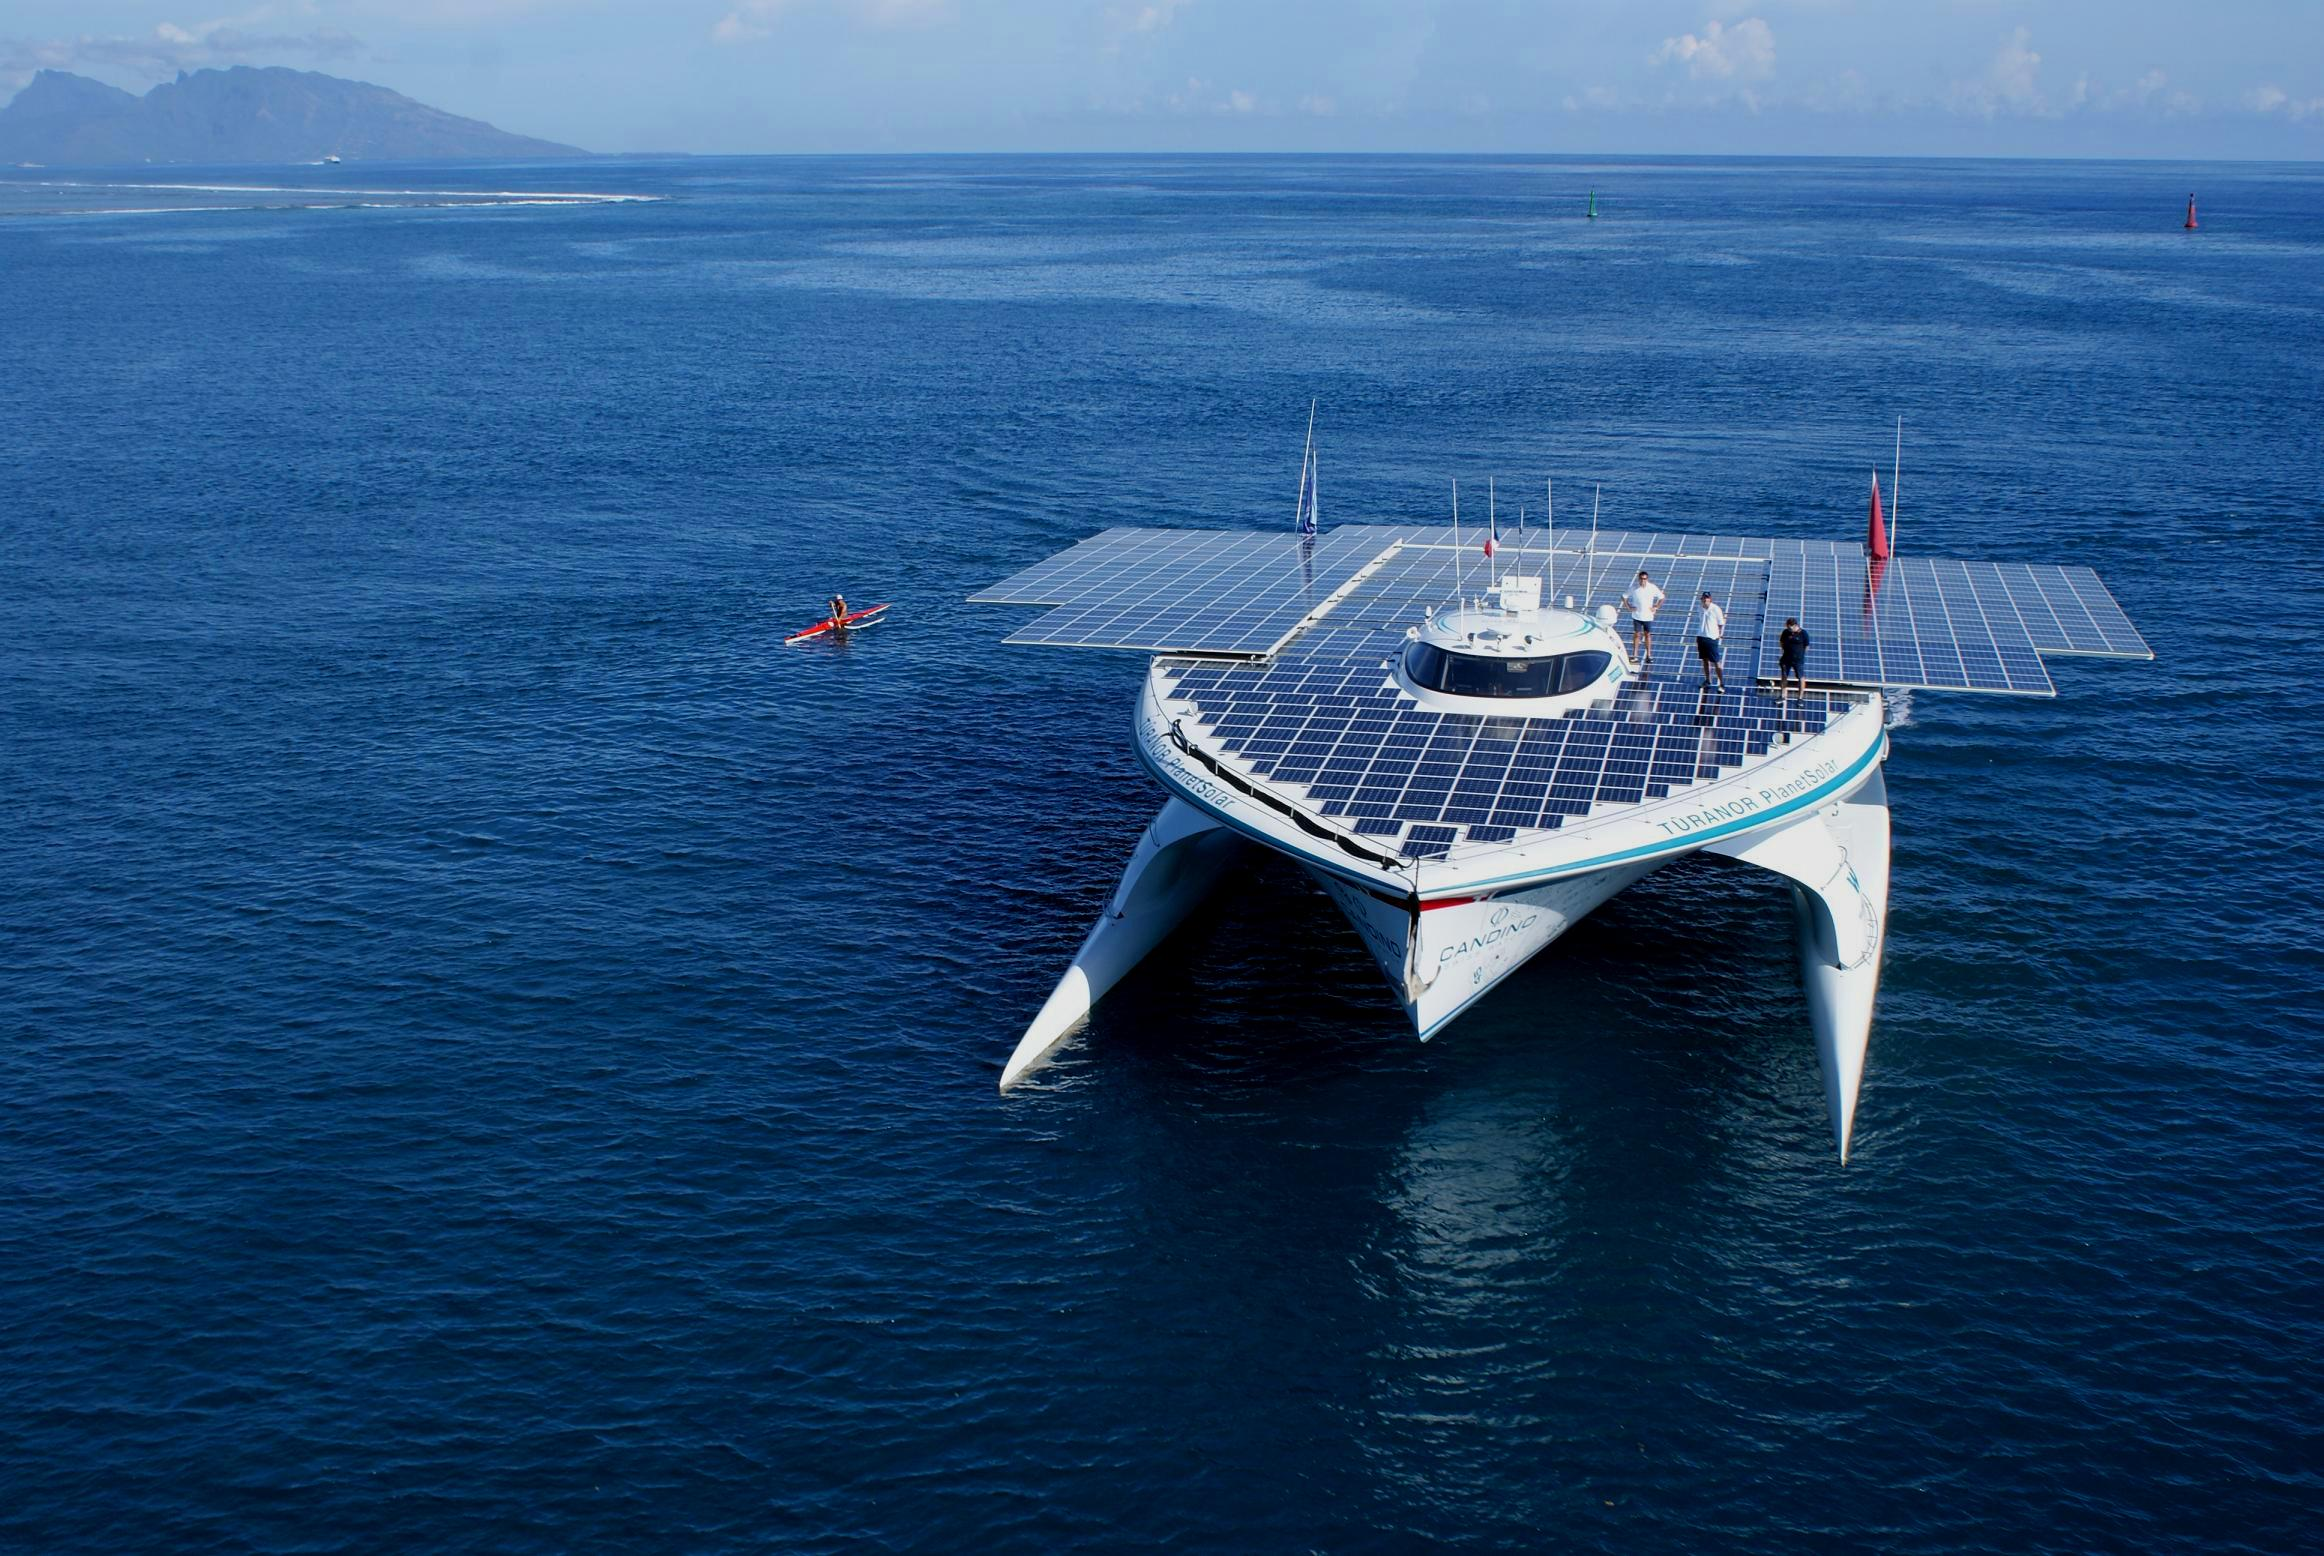 The Largest Solar Boat in the World - PLANET SOLAR